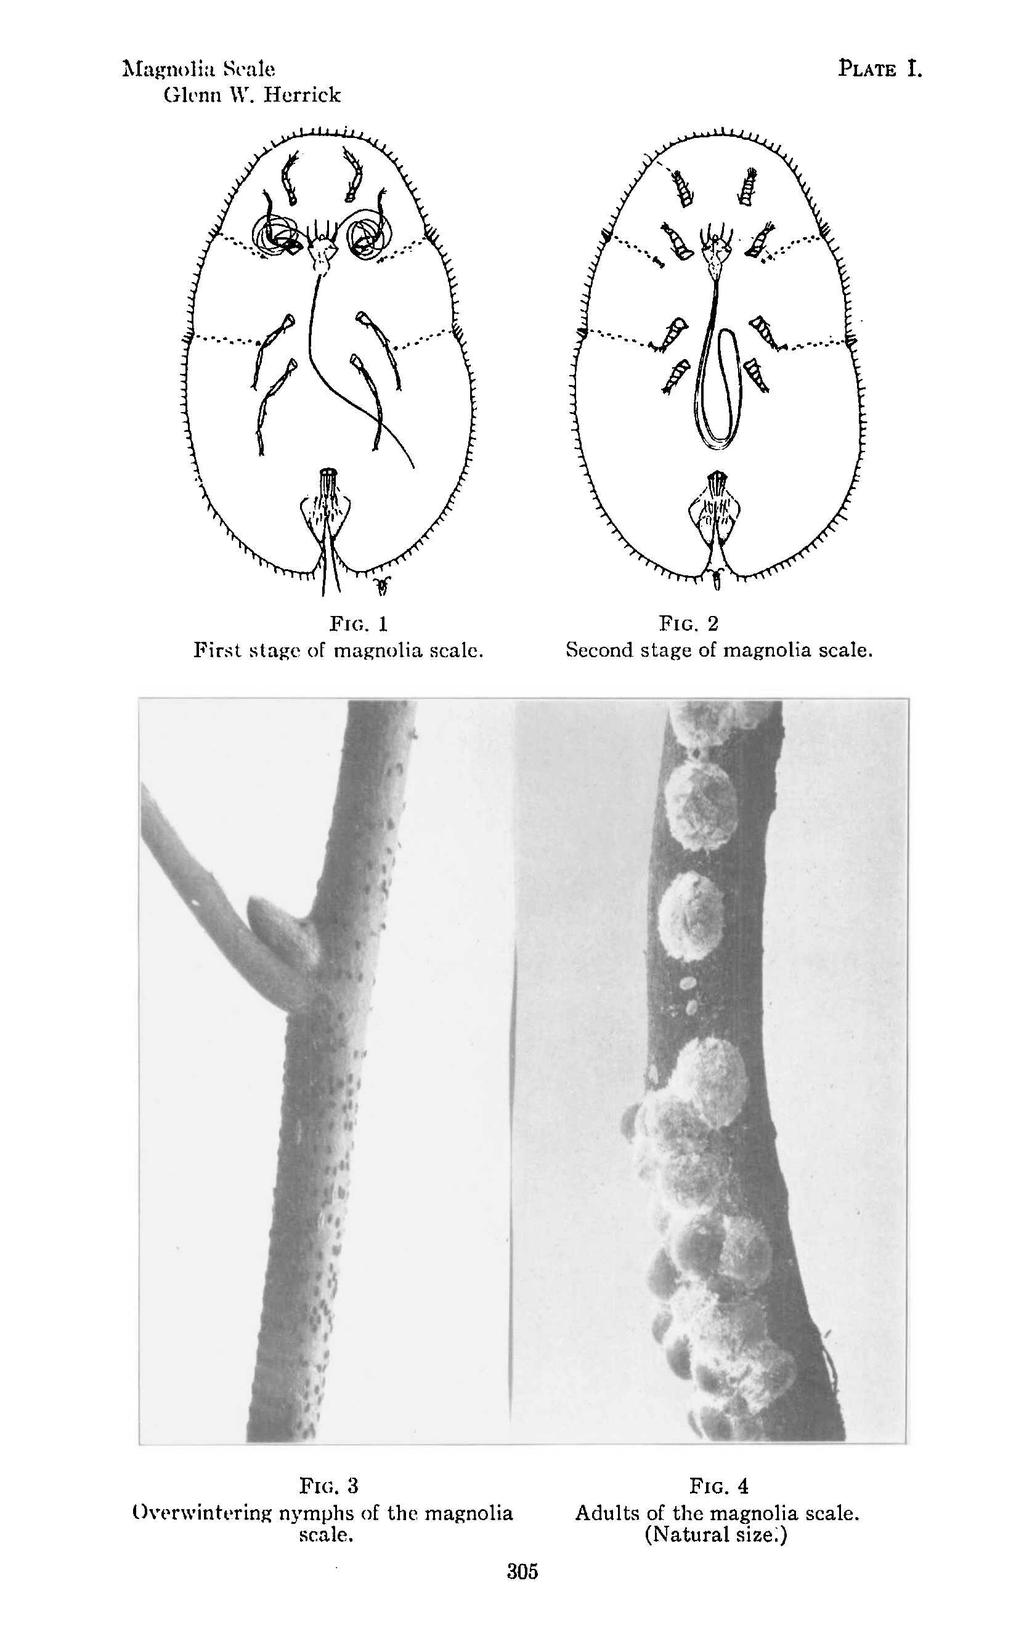 Mag-nolia Seale GIl'nn \Y. Herrick PLATE 1. FIG. 1 Fir~t stag-e of mag-nolia scale. FIG. 2 Second stag-e of magnolia scale.